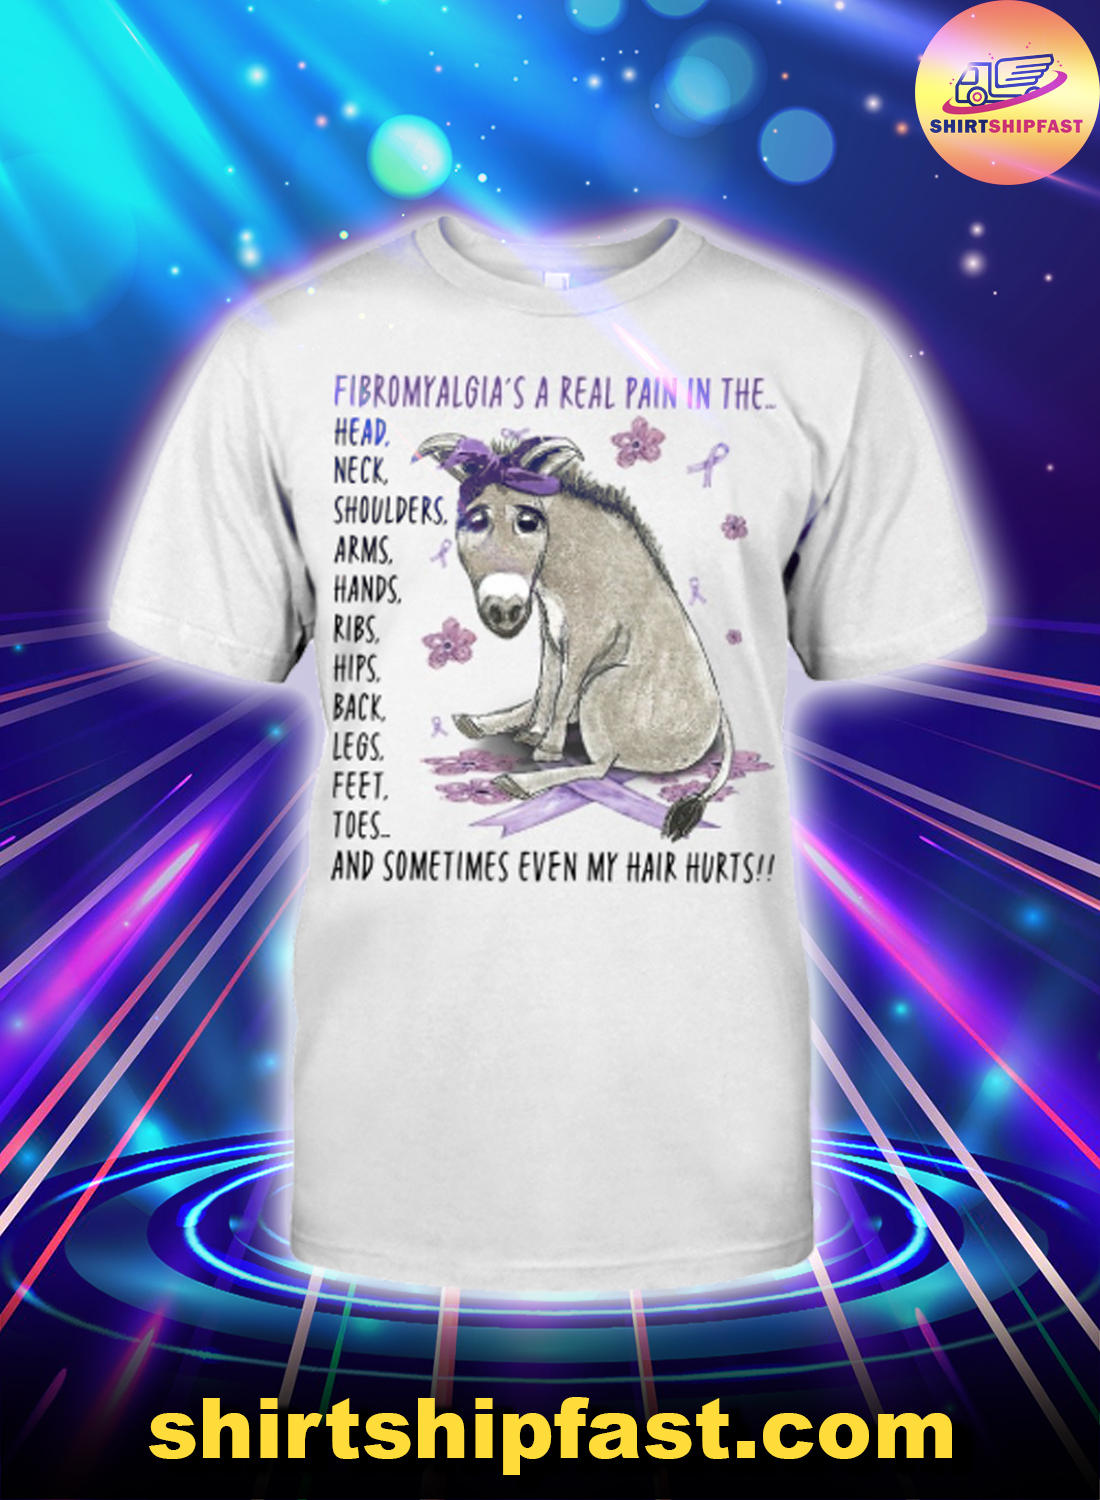 Fibromyalgia's a real pain in the whole body shirt